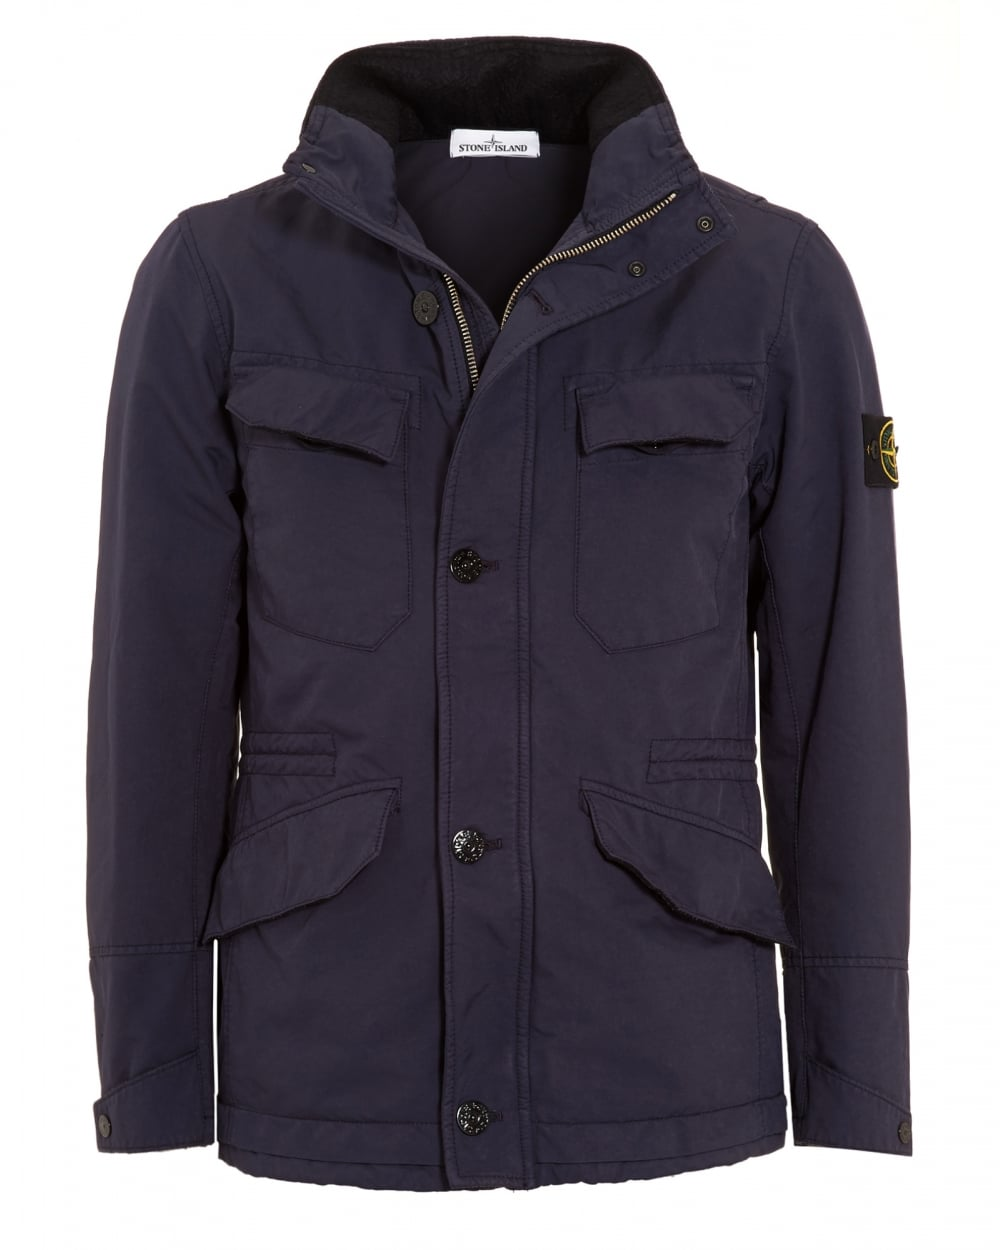 stone island mens david tc navy blue water repellent. Black Bedroom Furniture Sets. Home Design Ideas